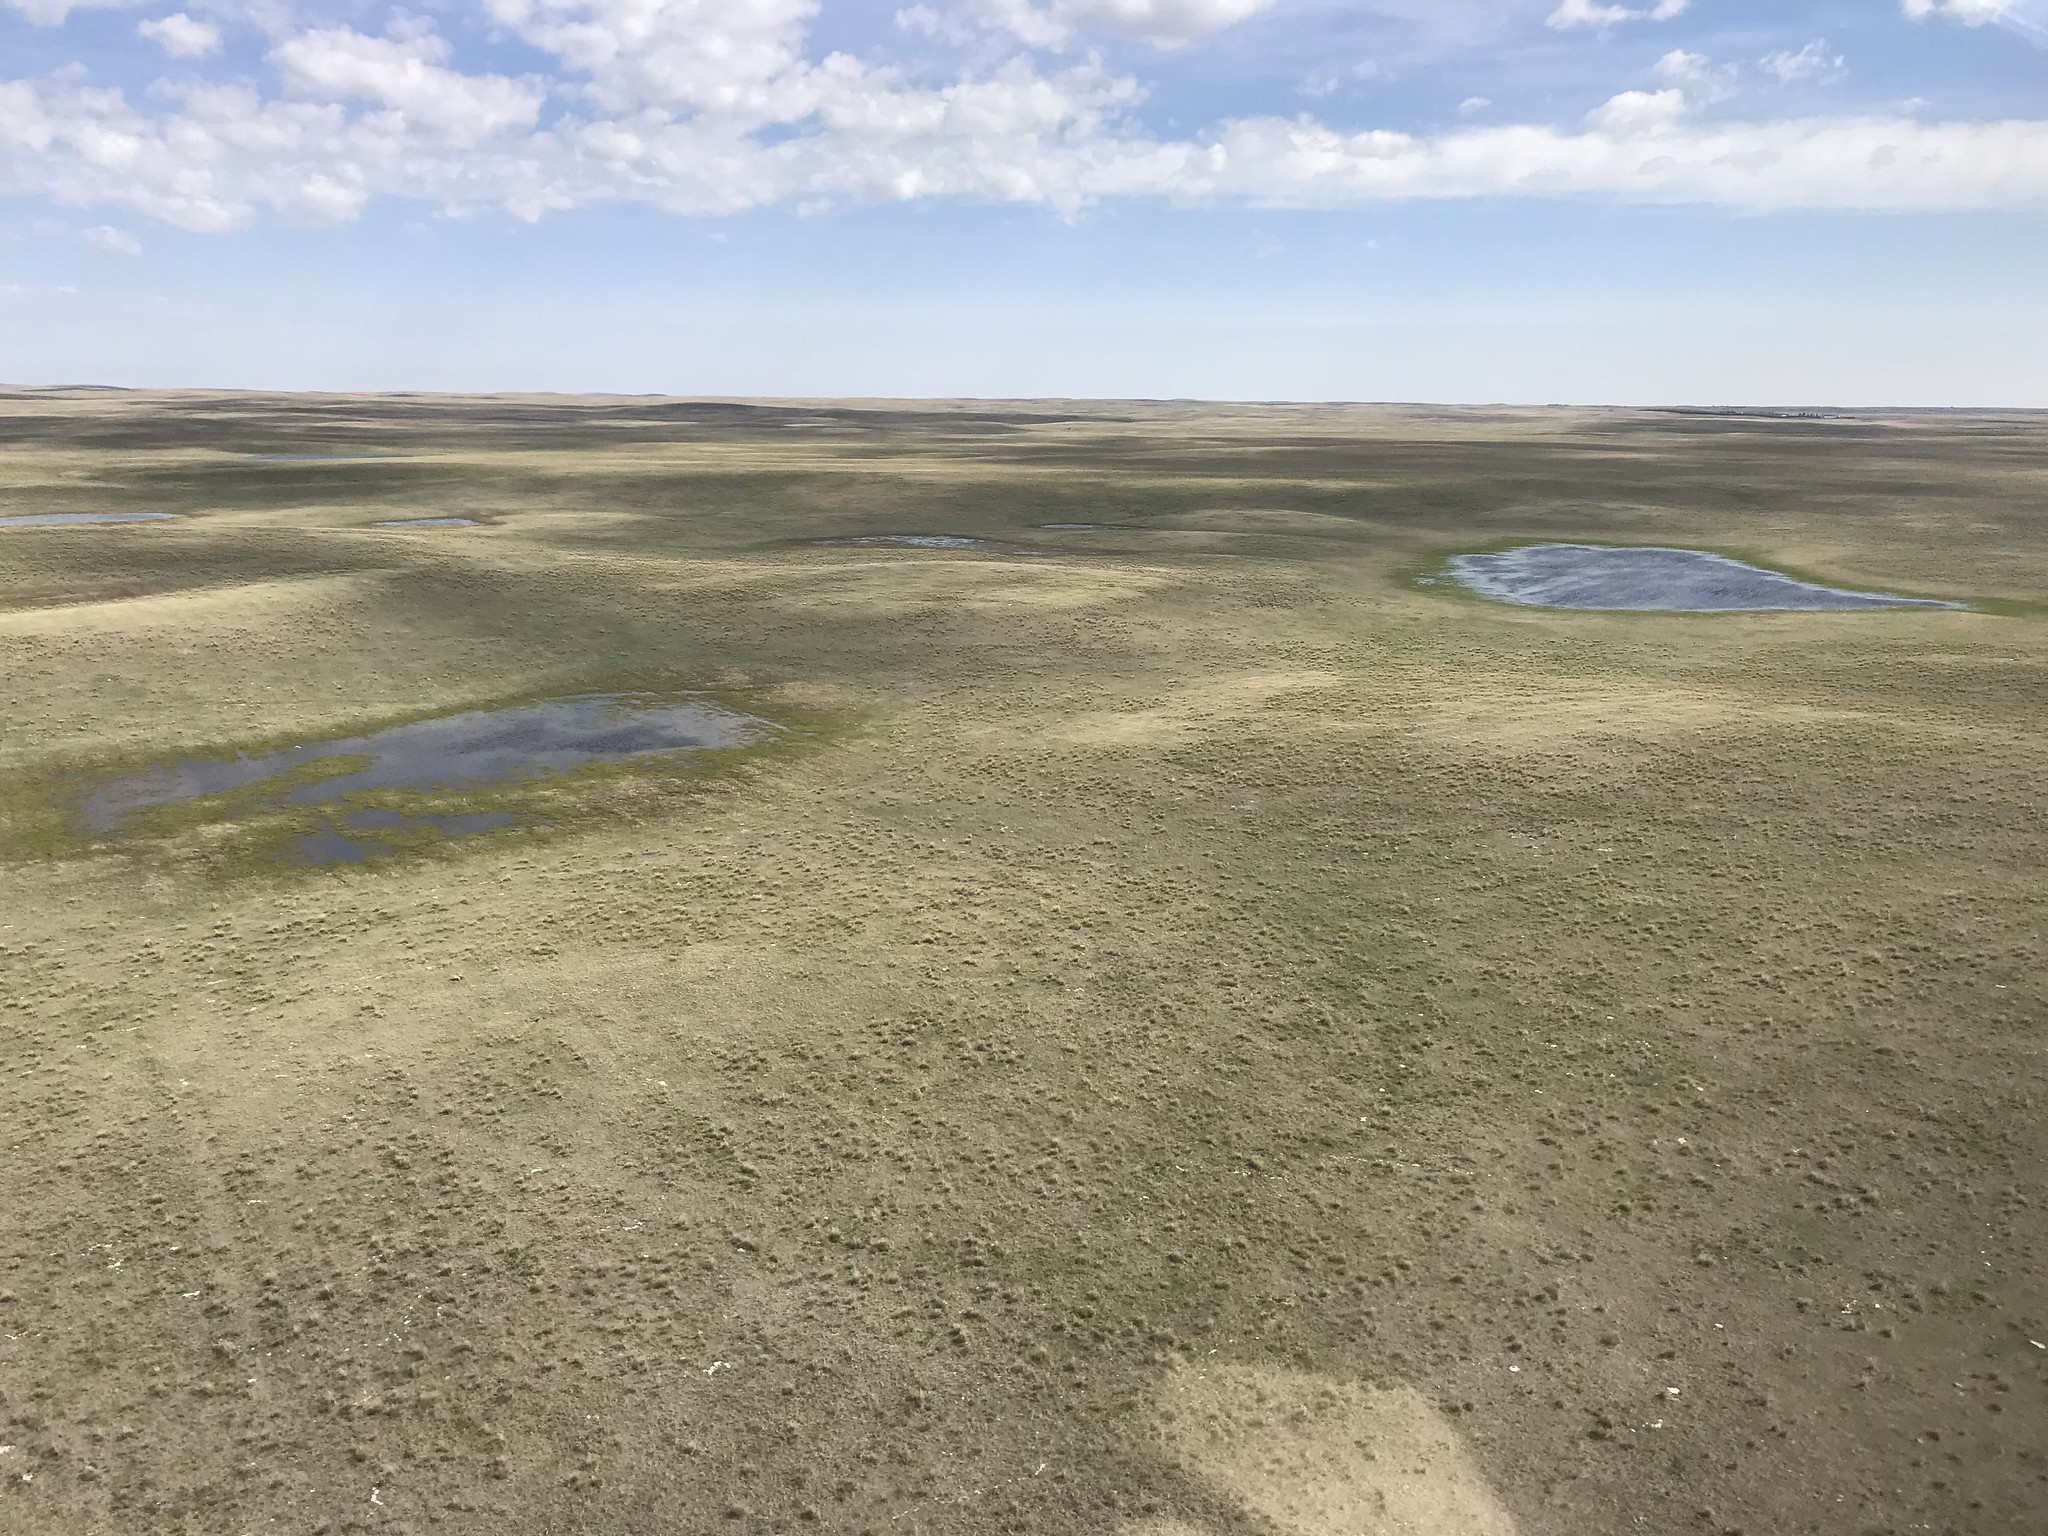 Good to excellent wetland conditions in the southwestern grasslands of Saskatchewan. Photo credit P. Thorpe, USFWS